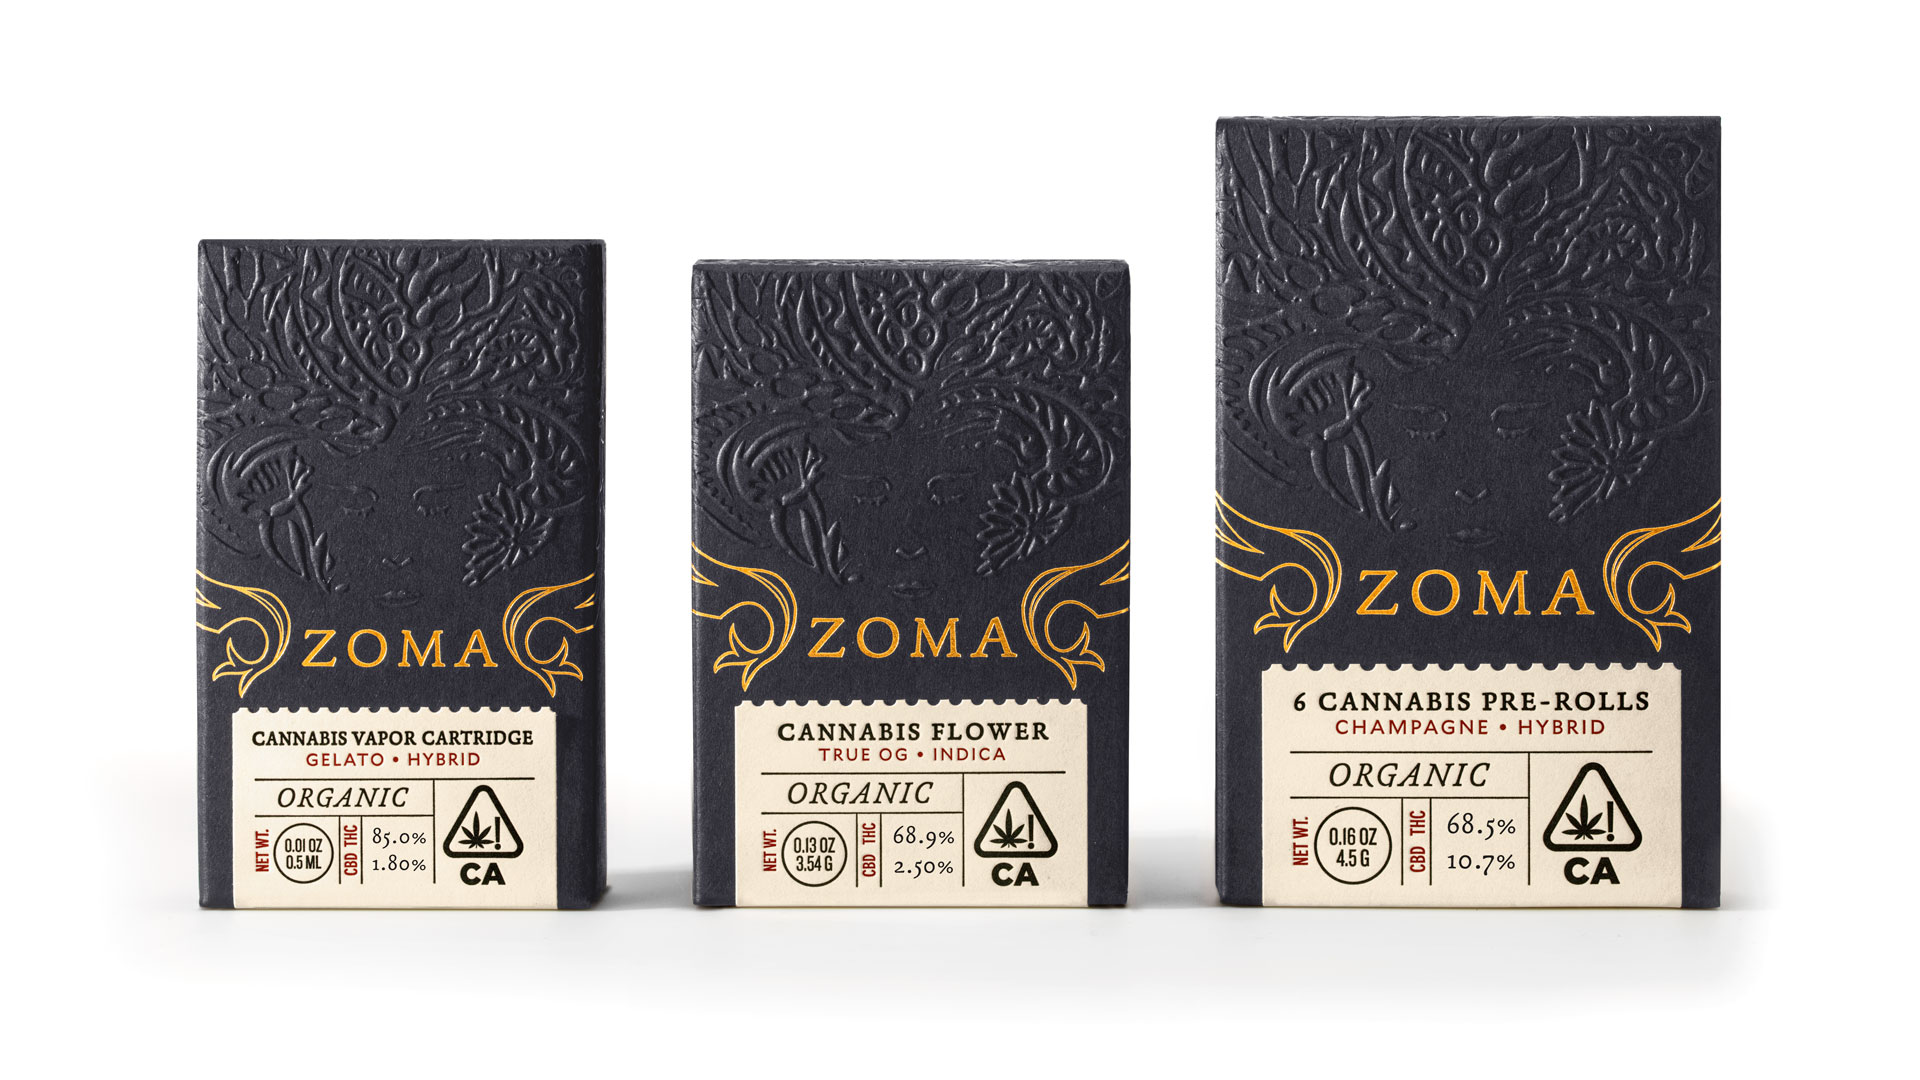 Zoma Cannabis Packaging - PaperSpecs